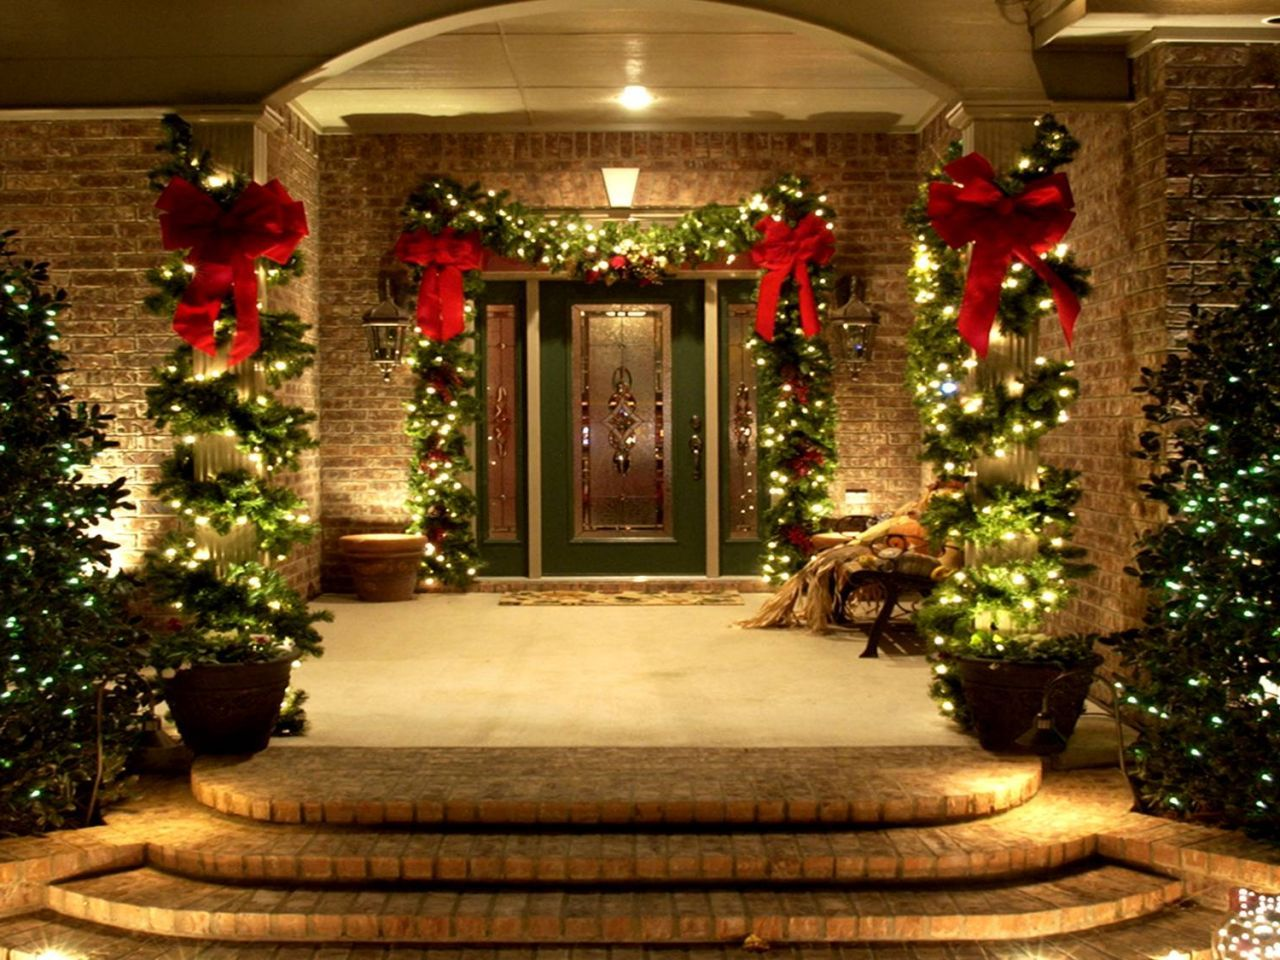 Use of lighting and decorative plants to the outdoor for Holiday decorated homes